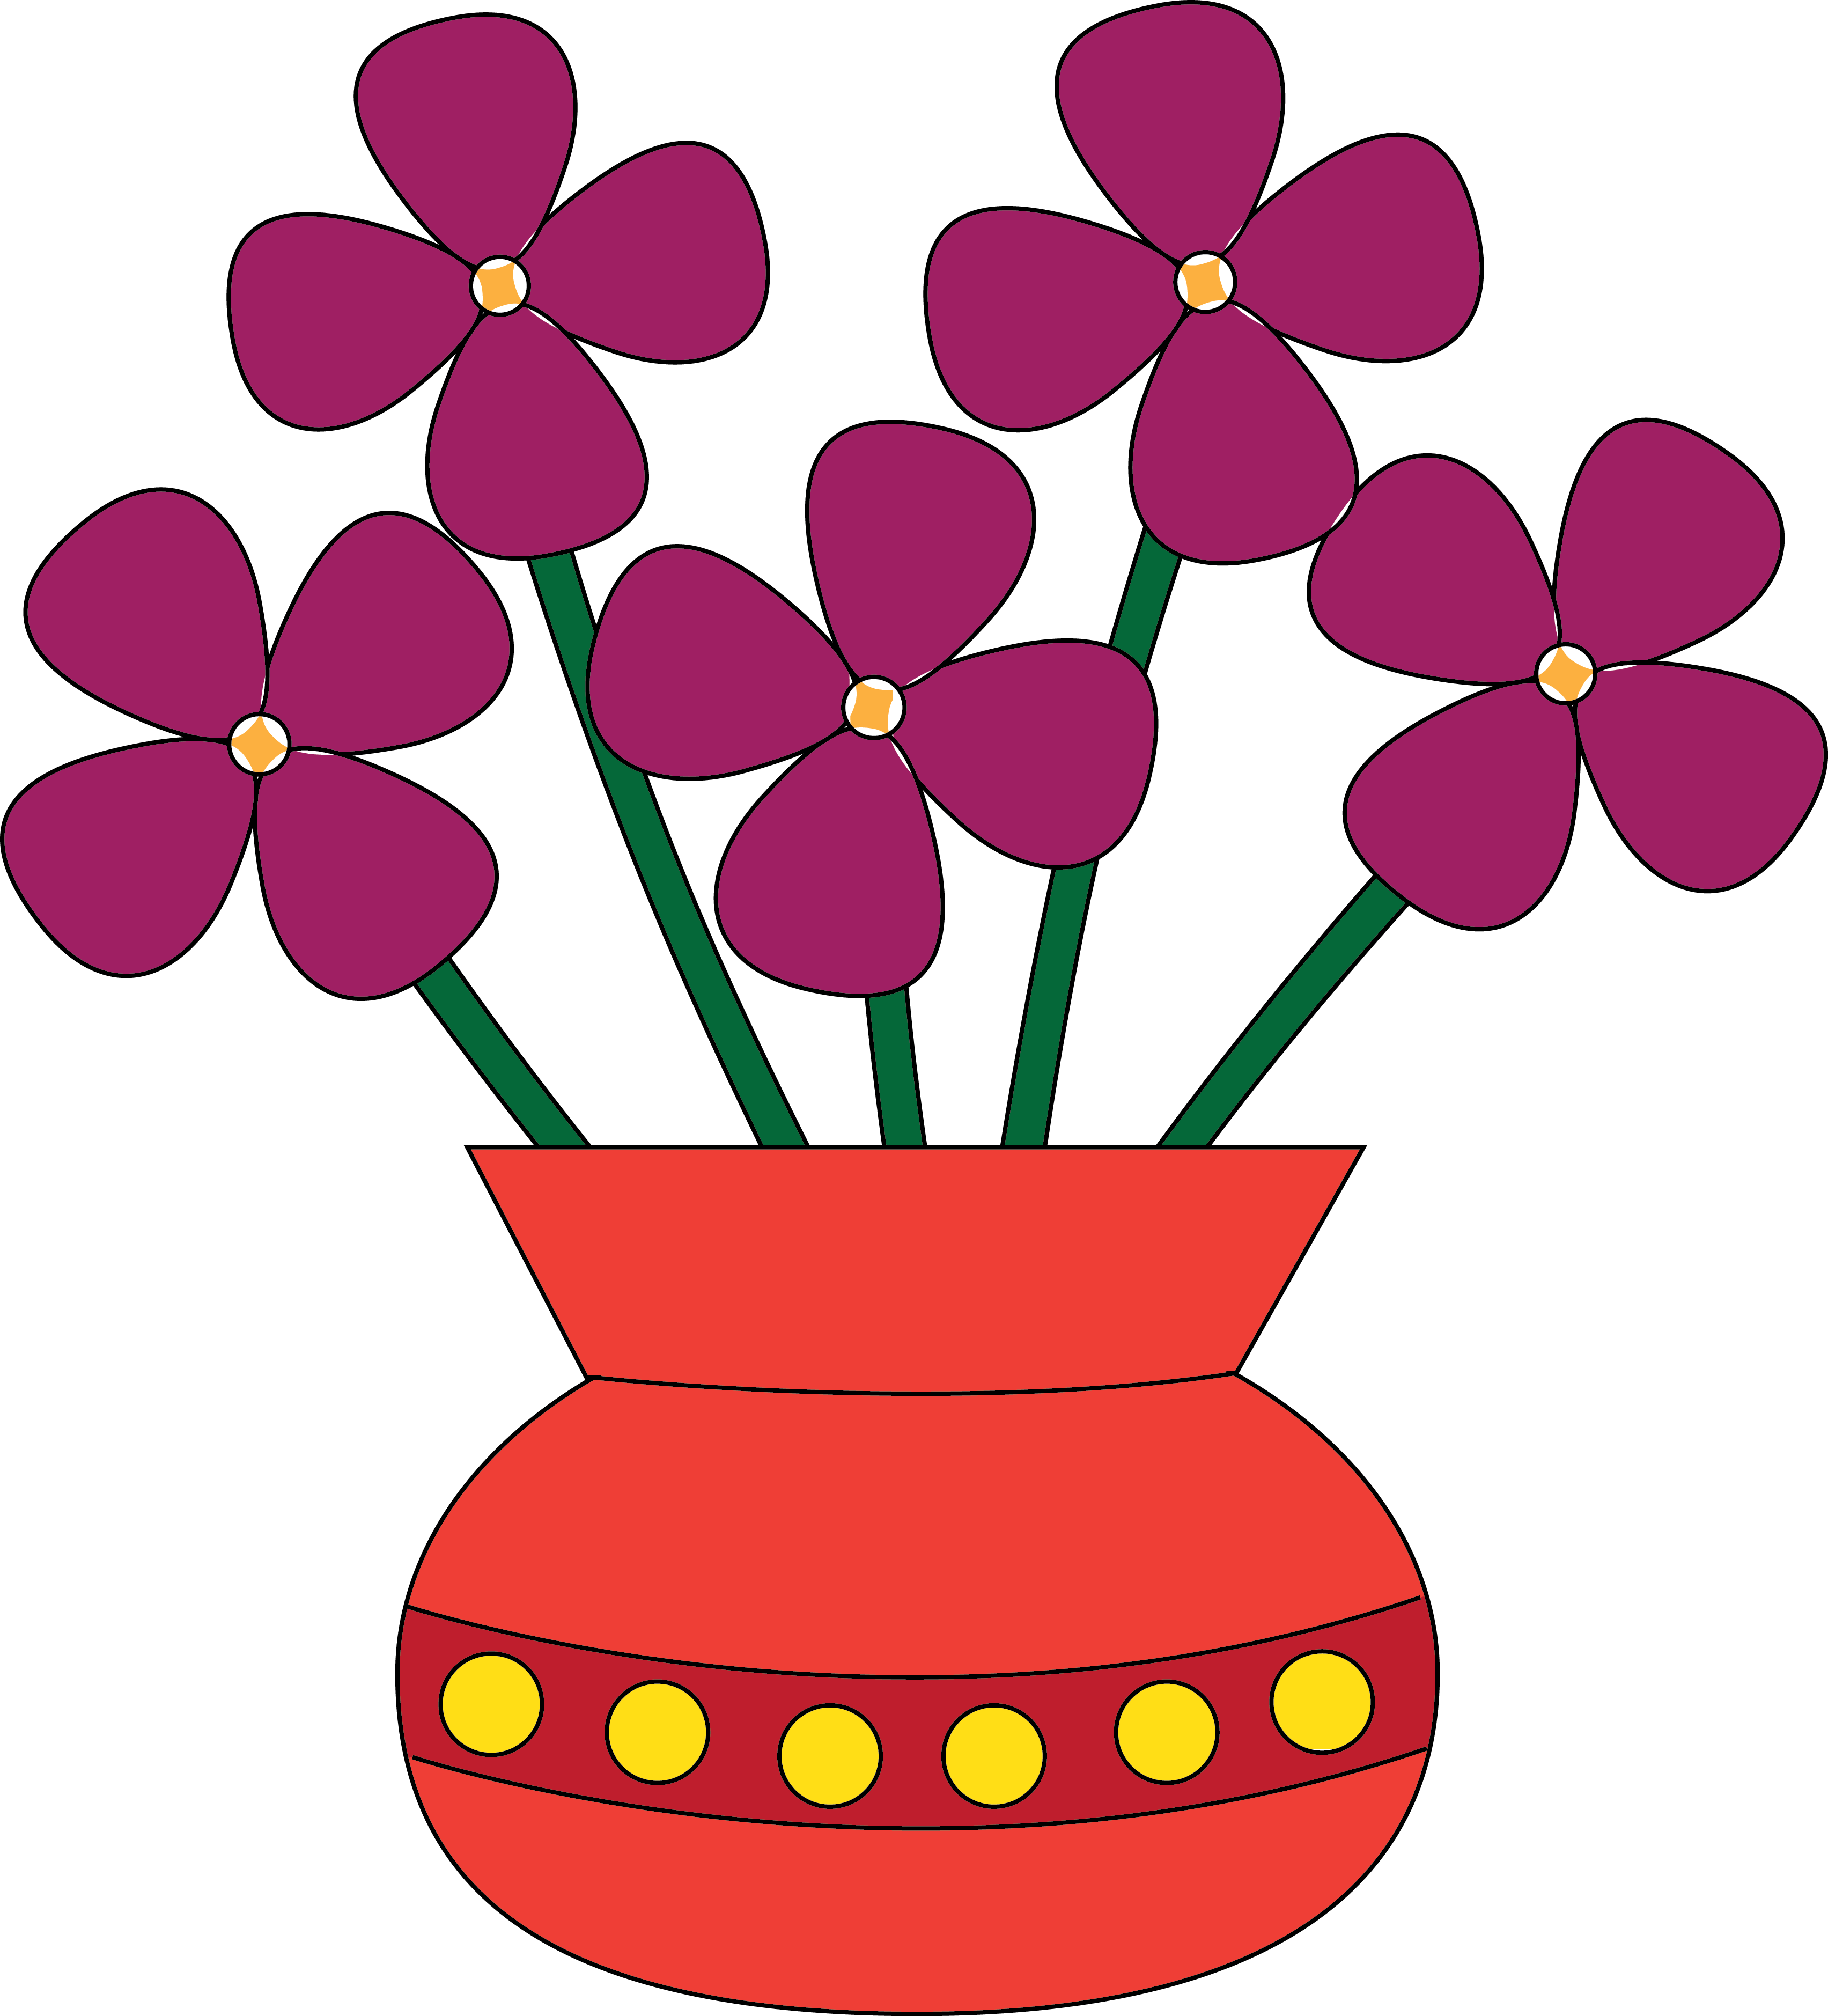 Flower Clip Art For Kids | Clipart Panda - Free Clipart Images